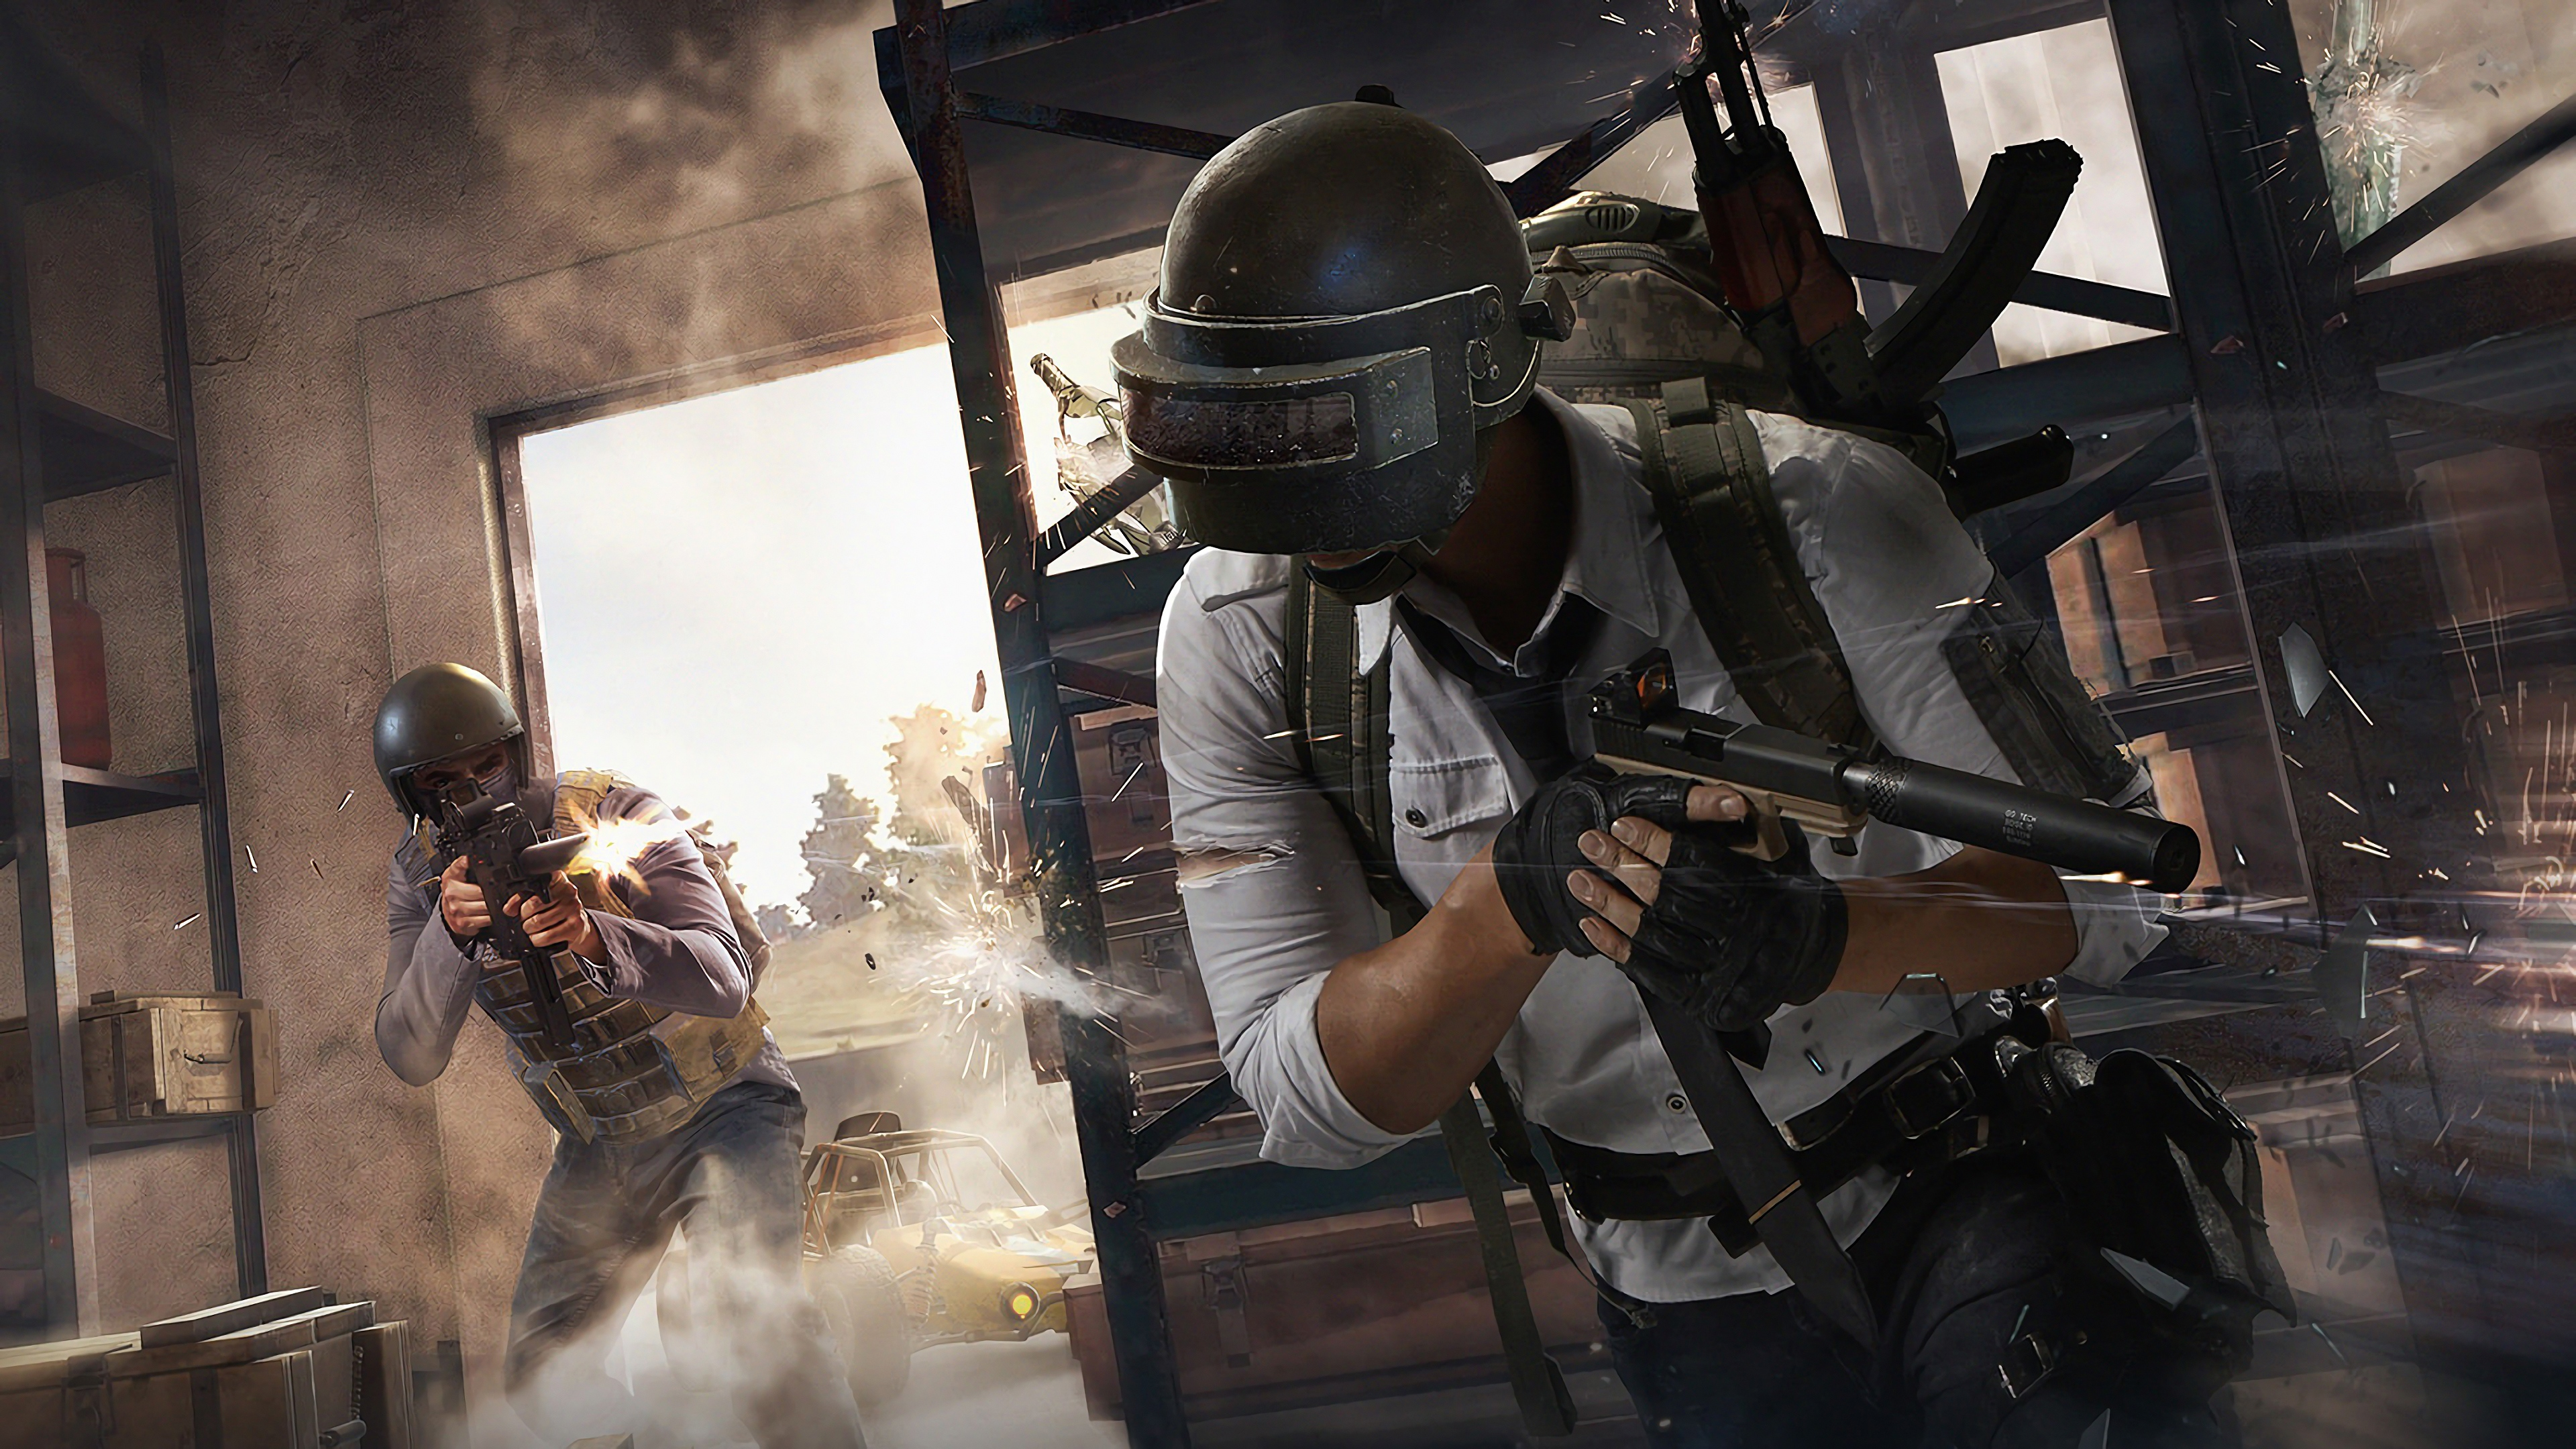 Pubg Game Hd Wallpaper Download: 1440x900 PUBG Helmet Guy 2018 4k 1440x900 Resolution HD 4k